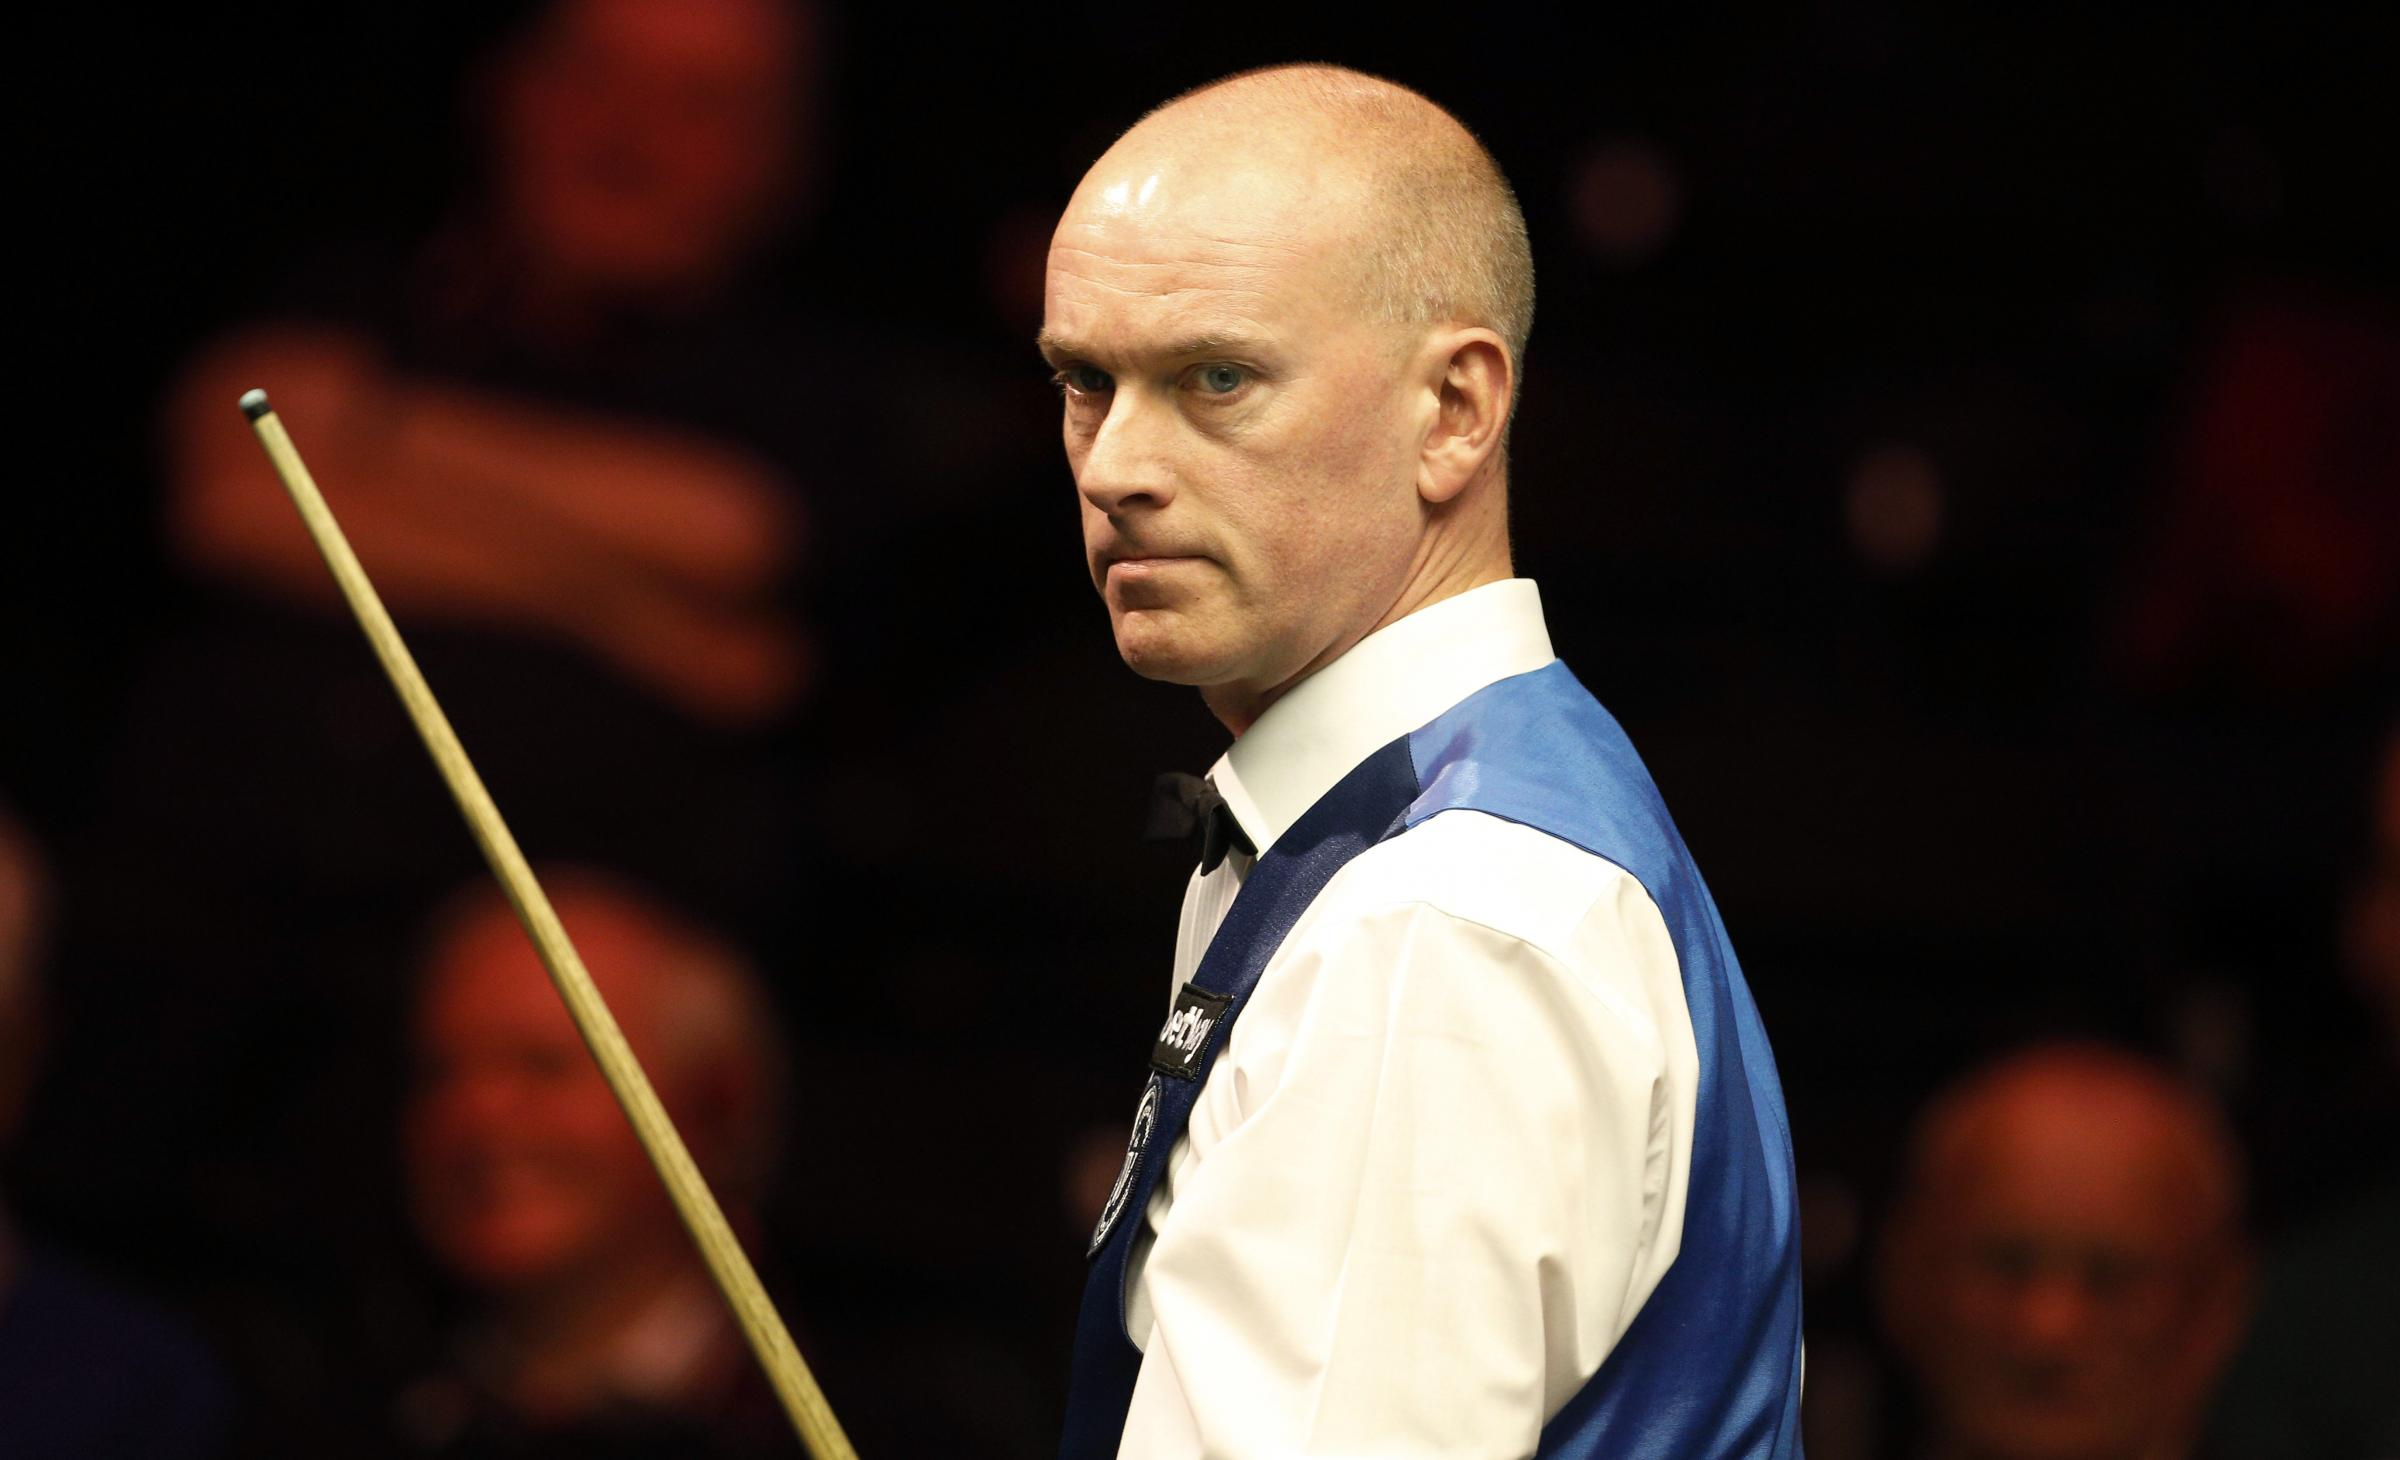 Peter Ebdon was knocked out in the second round at Watford Colosseum. Picture: Action Images